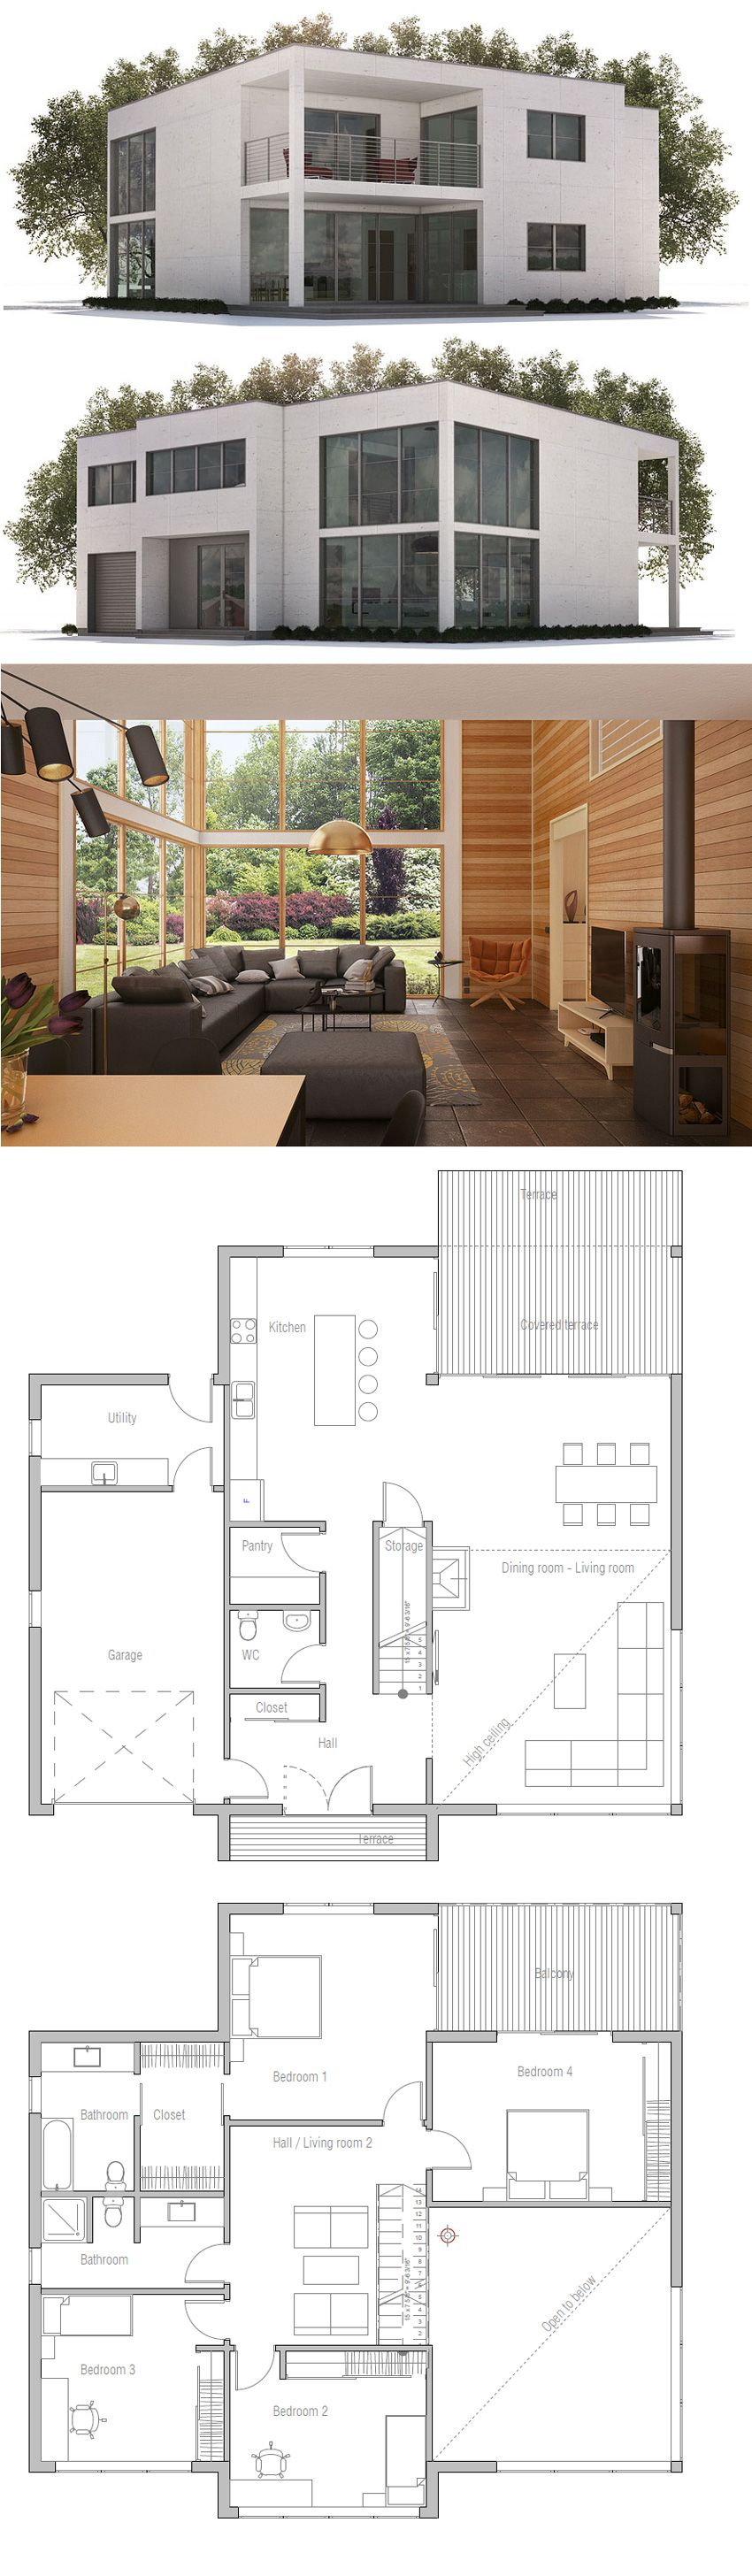 Apartment Building Architectural Plans apartment unit plans | modern apartment building plans in 2013